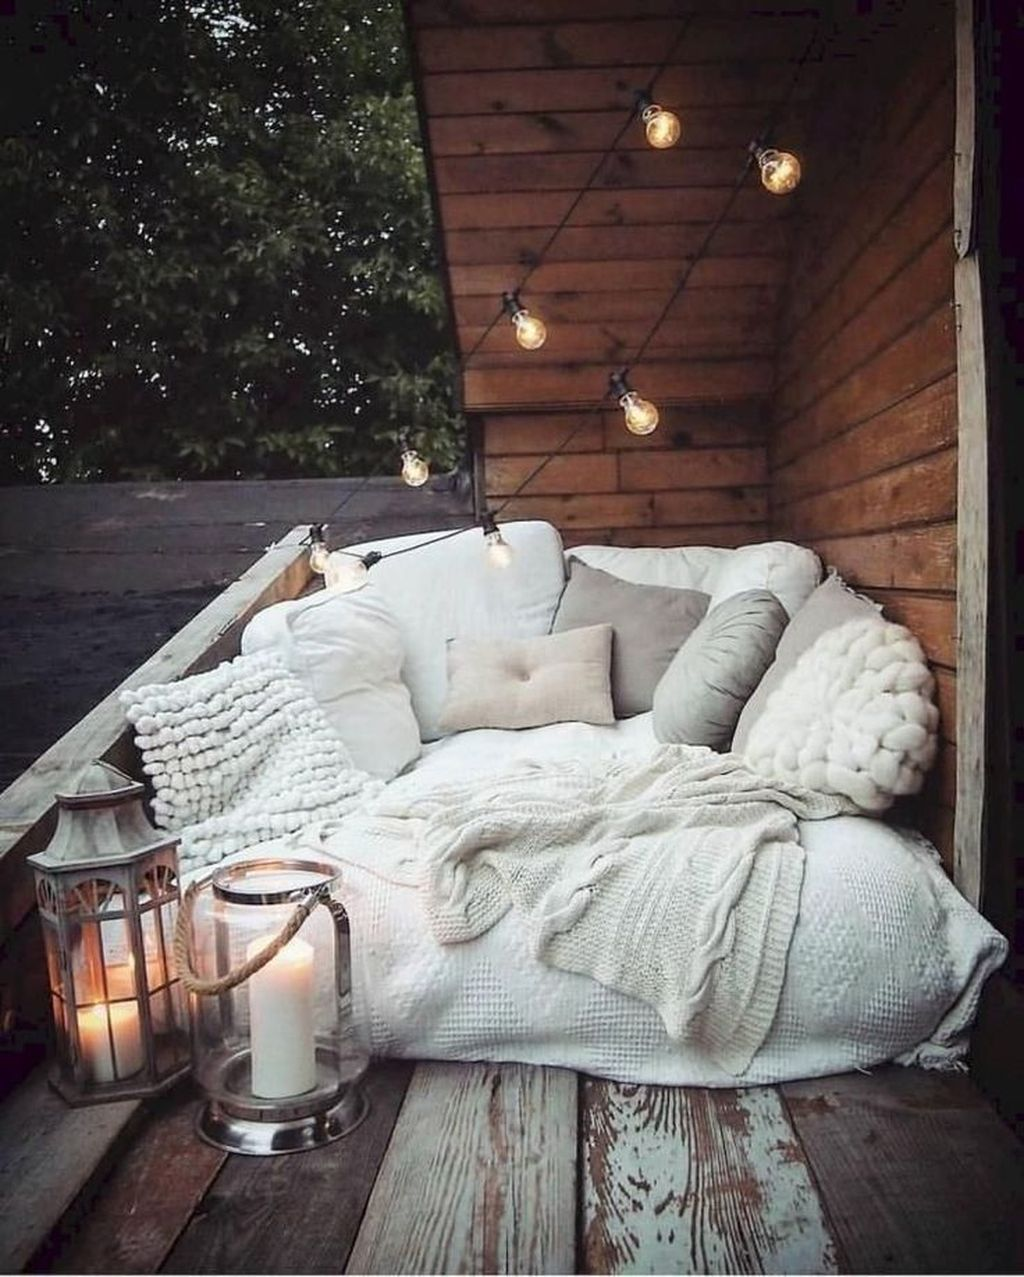 Stunning Apartment Balcony Decor Ideas For This Winter 33